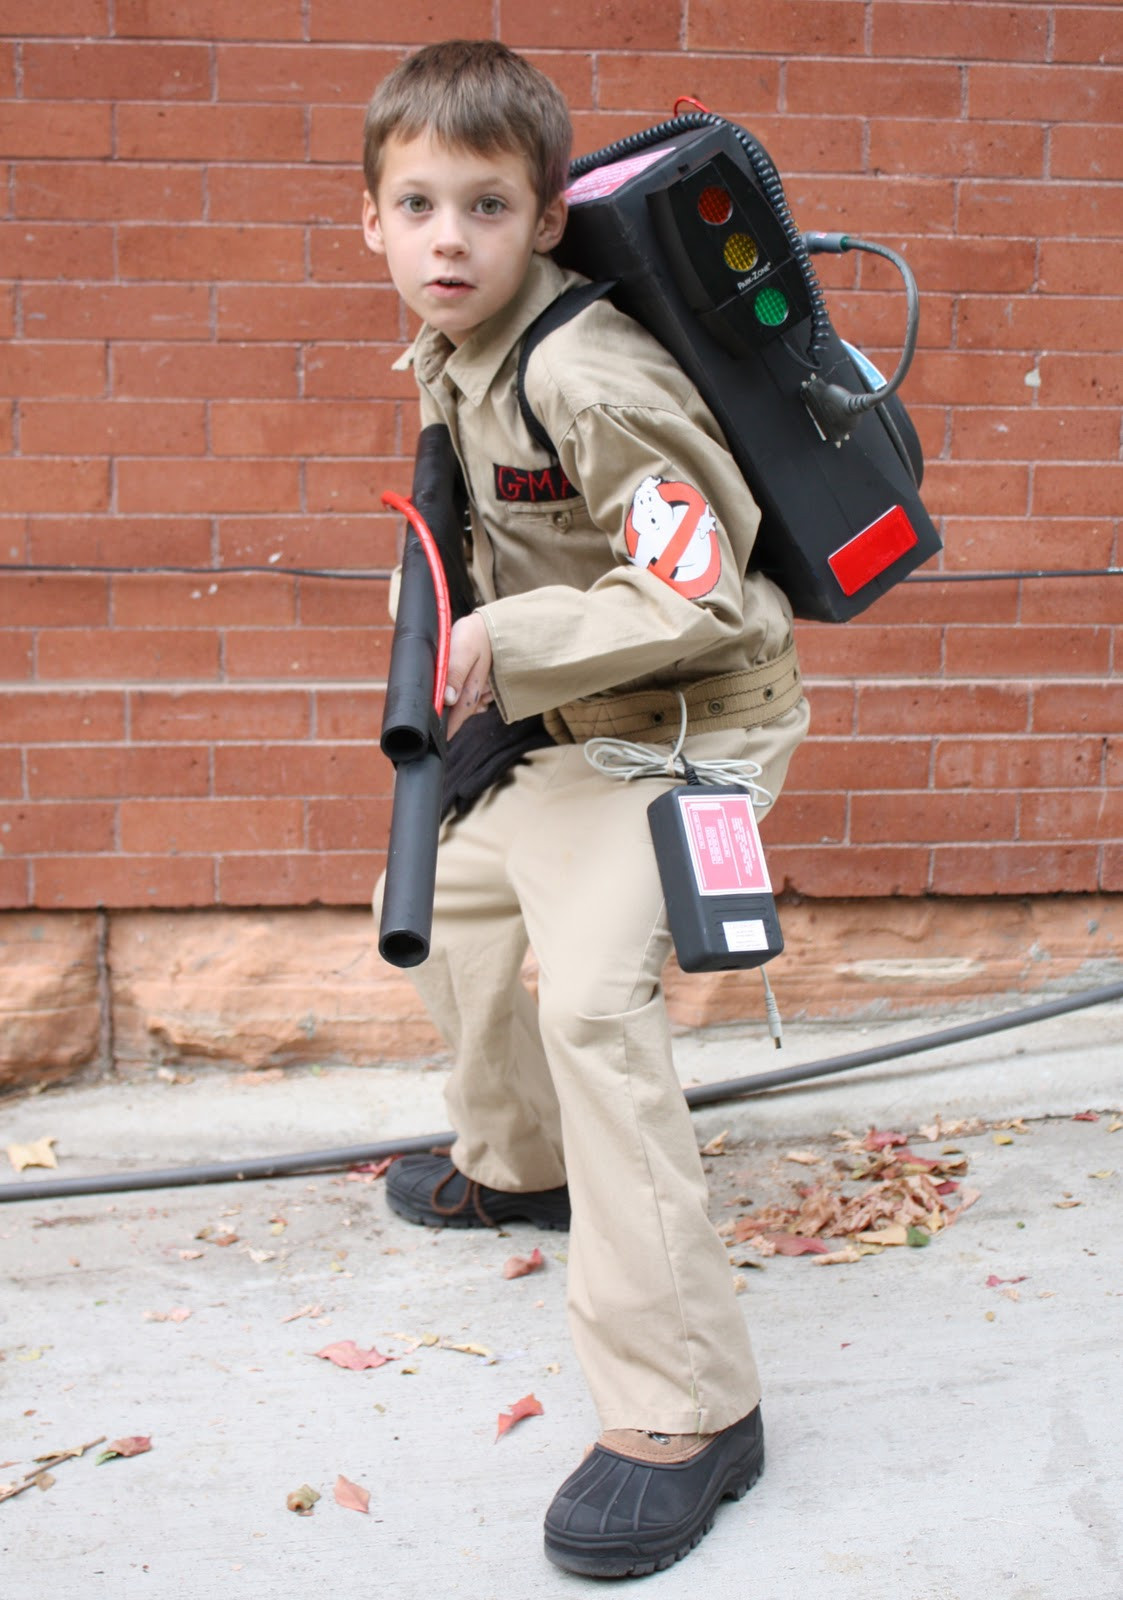 Best ideas about DIY Kids Ghostbuster Costume . Save or Pin At Second Street Who ya gonna call Now.